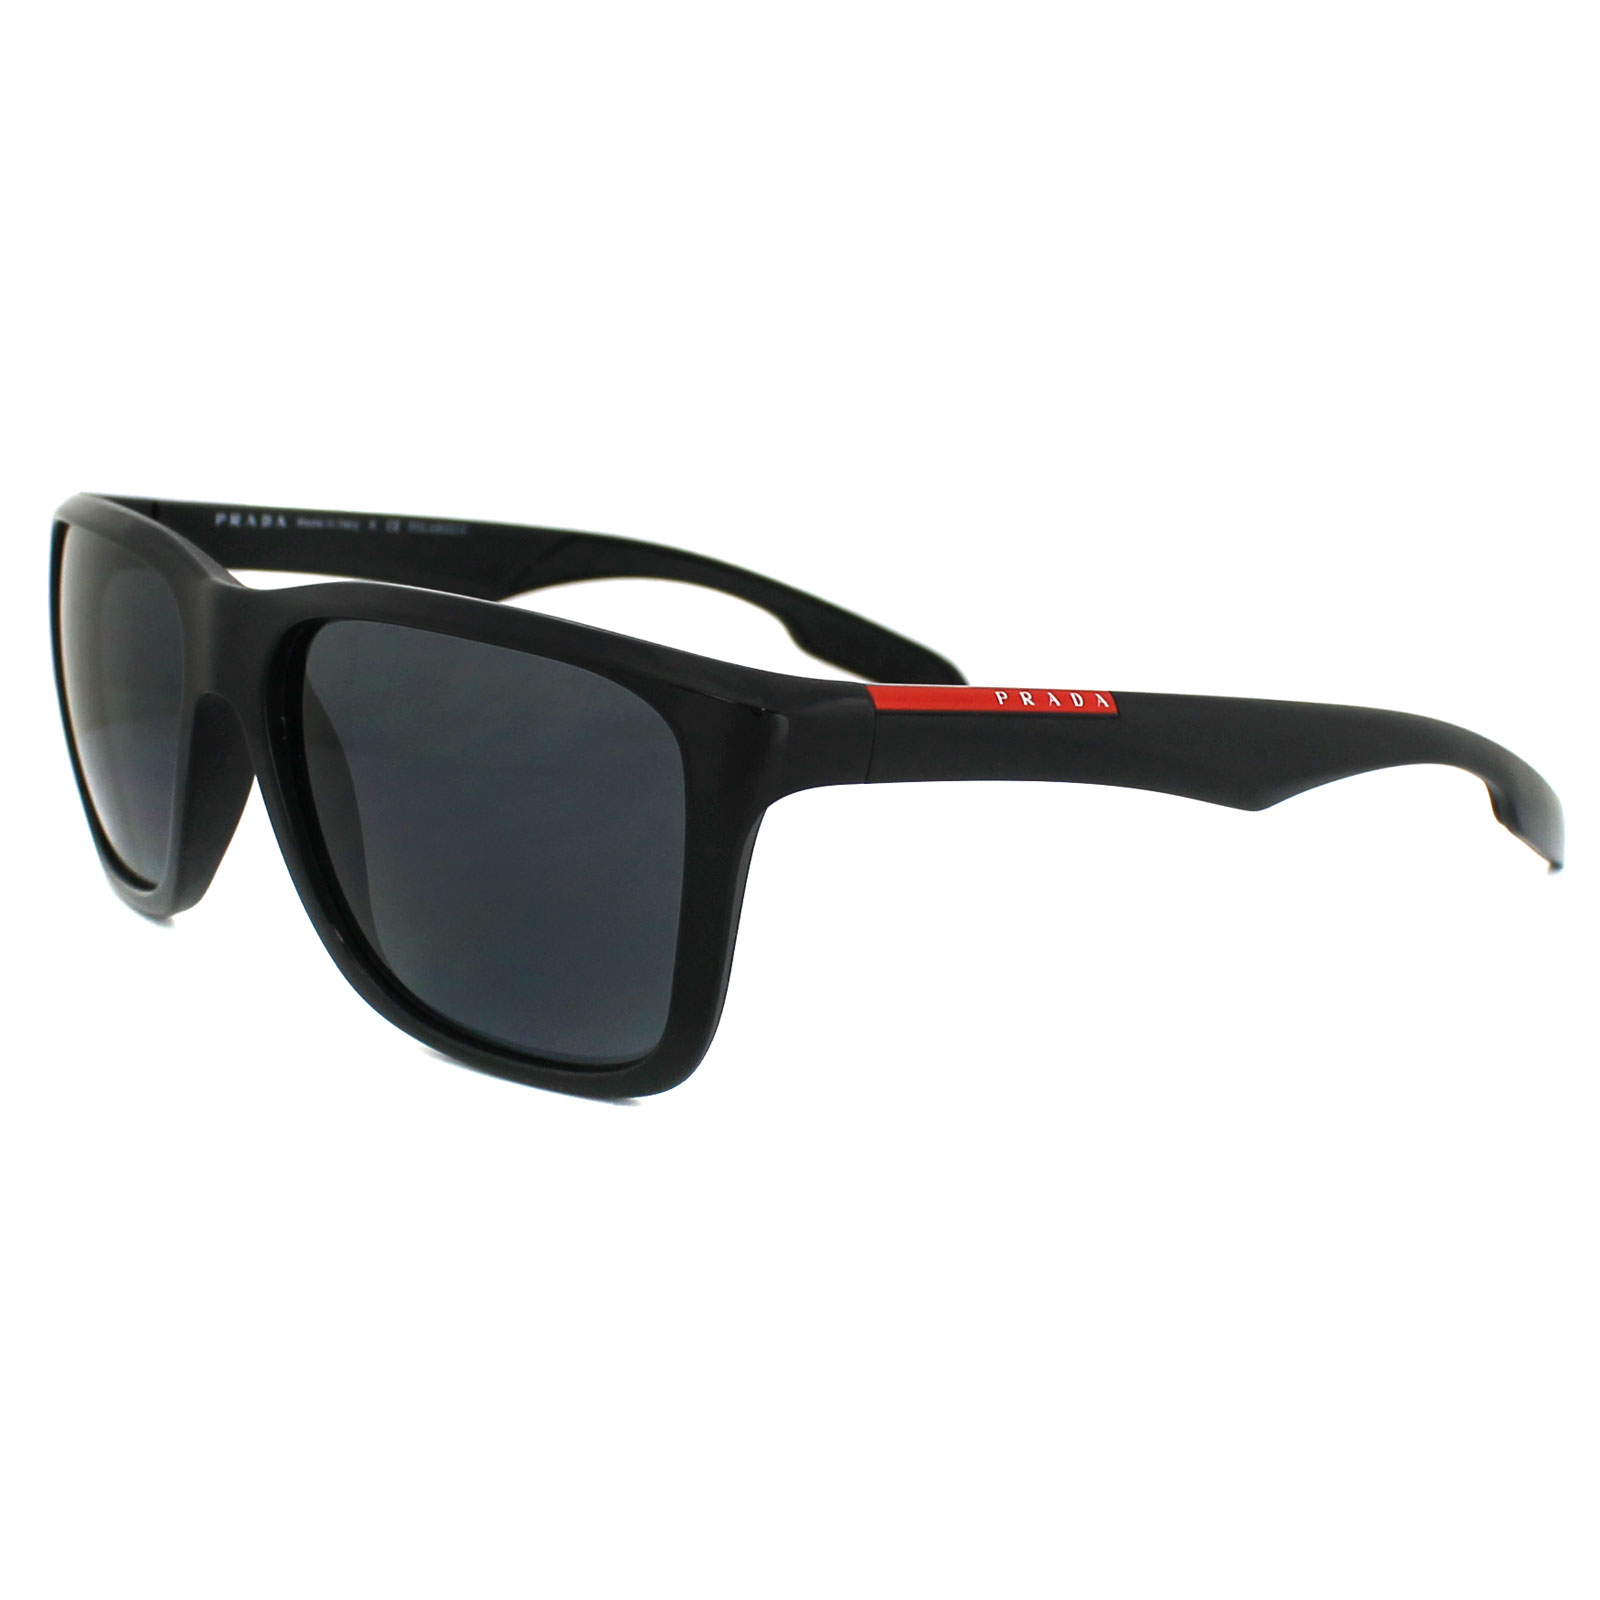 33b30d573599 Ebay Sunglasses Polarized